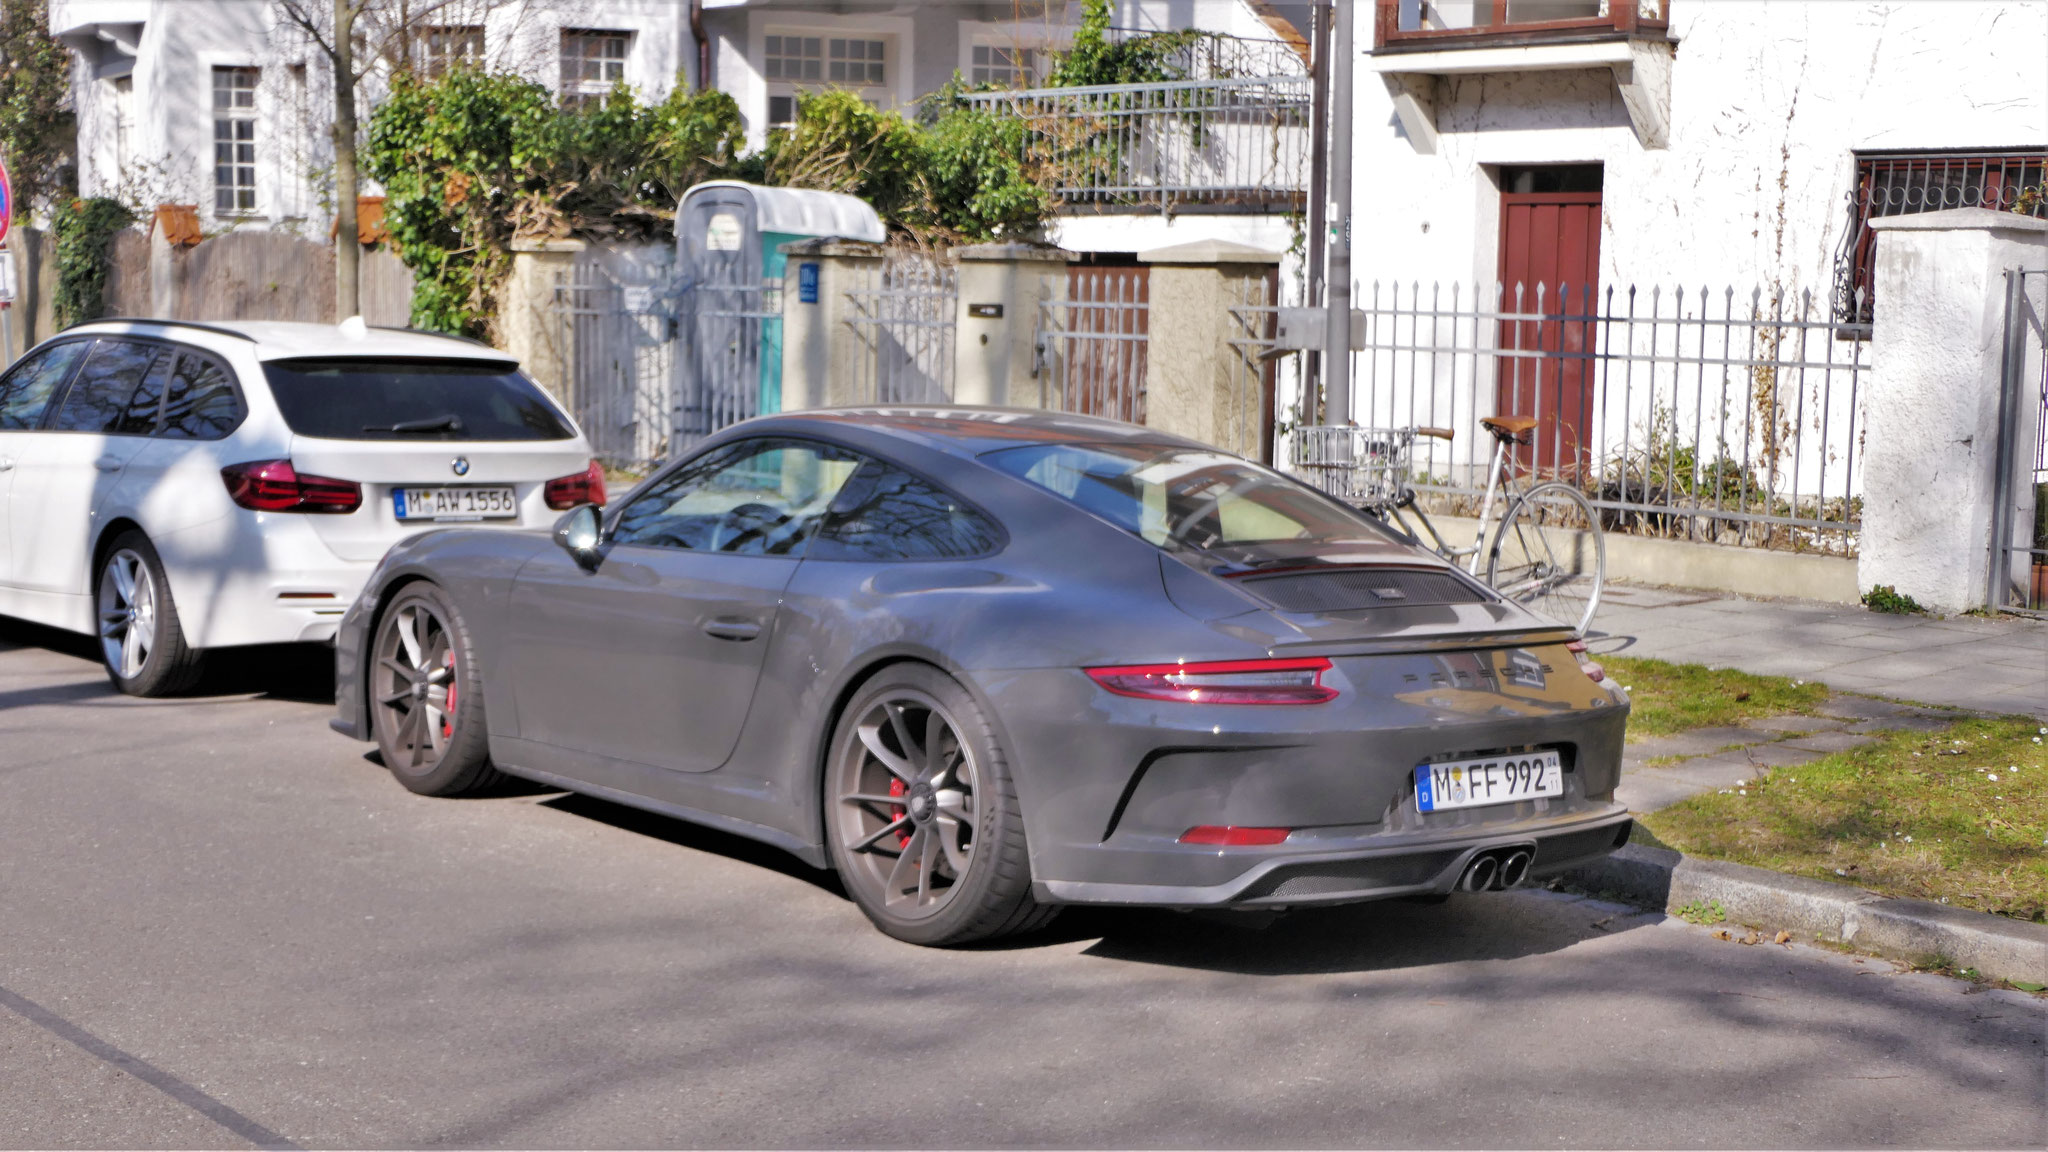 Porsche 991 GT3 Touring Package - M-FF-992